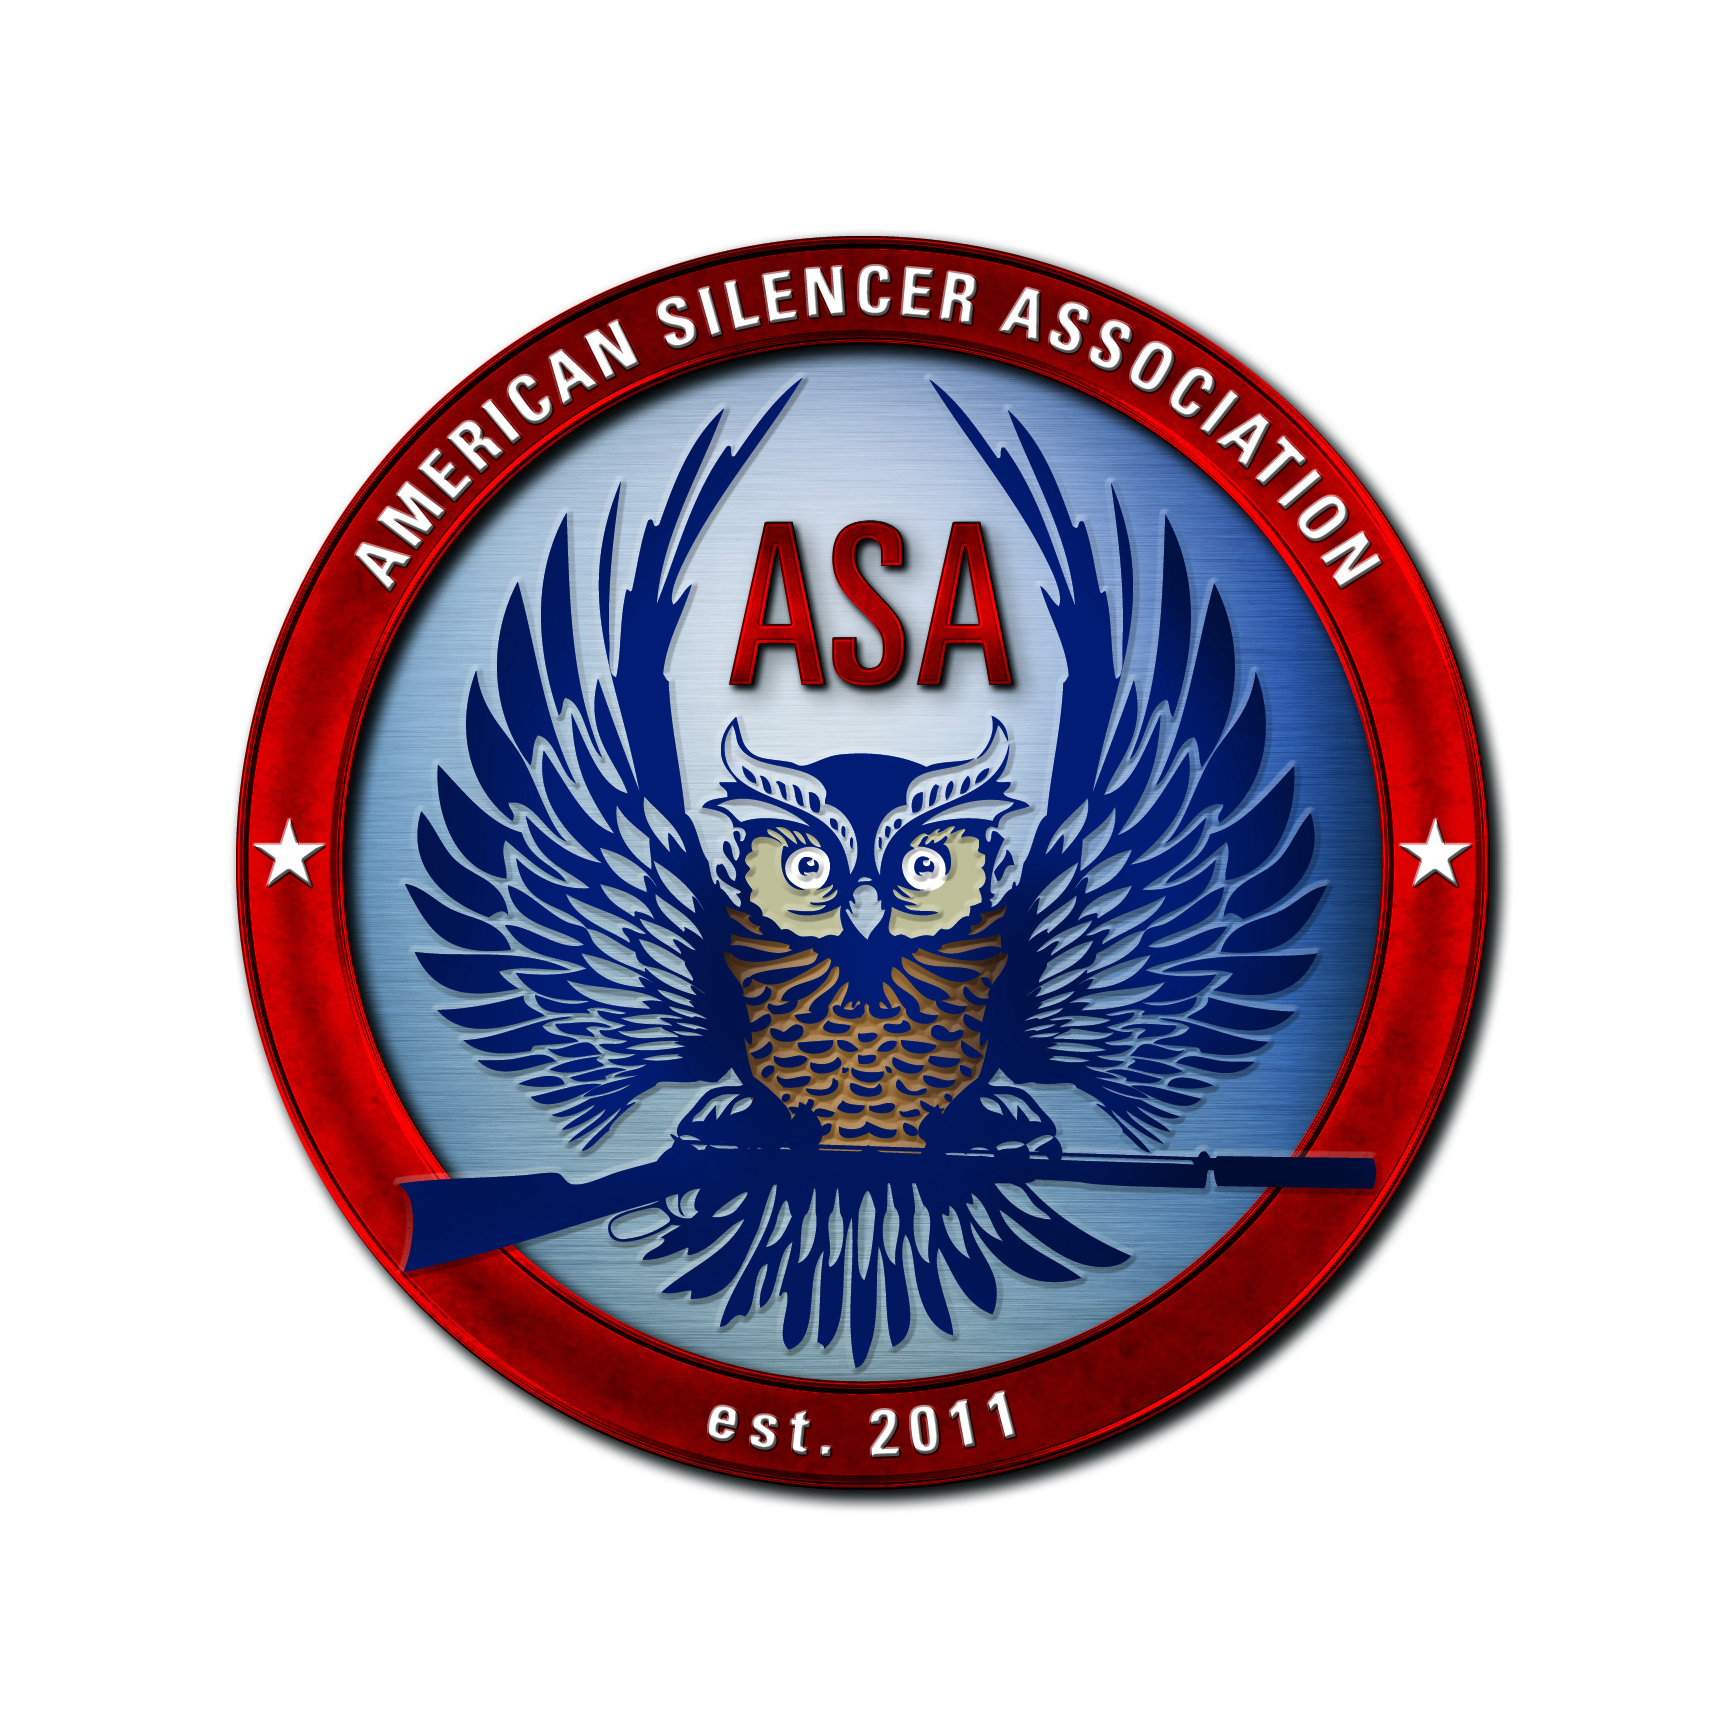 AMERICAN SILENCER ASSOCIATION STATEMENT ON ATF 41P